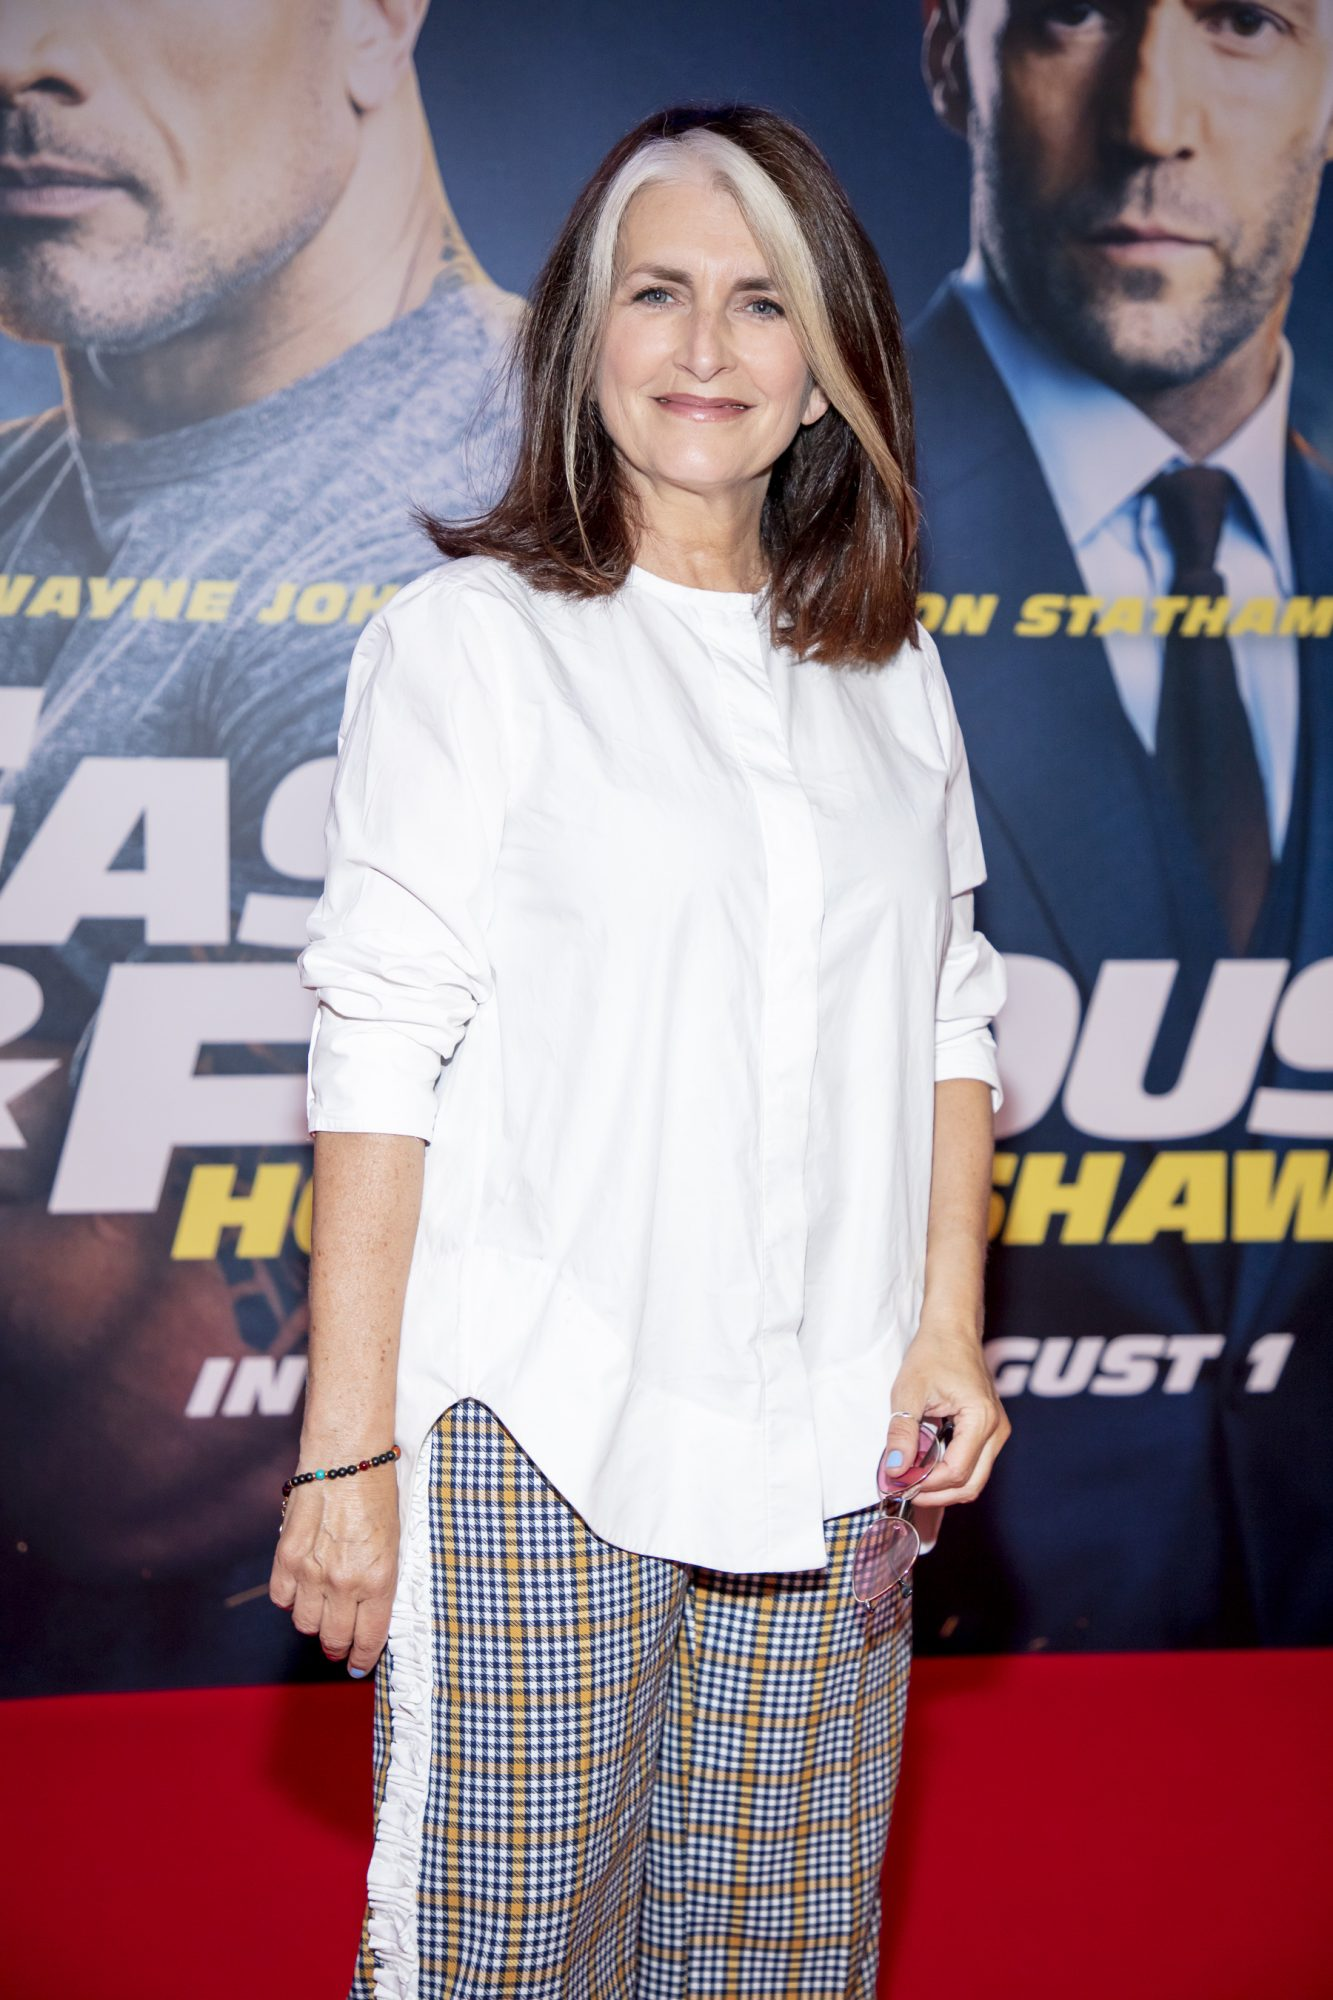 Cathy O'Connor pictured at a special preview screening of Fast & Furious Presents: Hobbs & Shaw. Photo: Anthony Woods